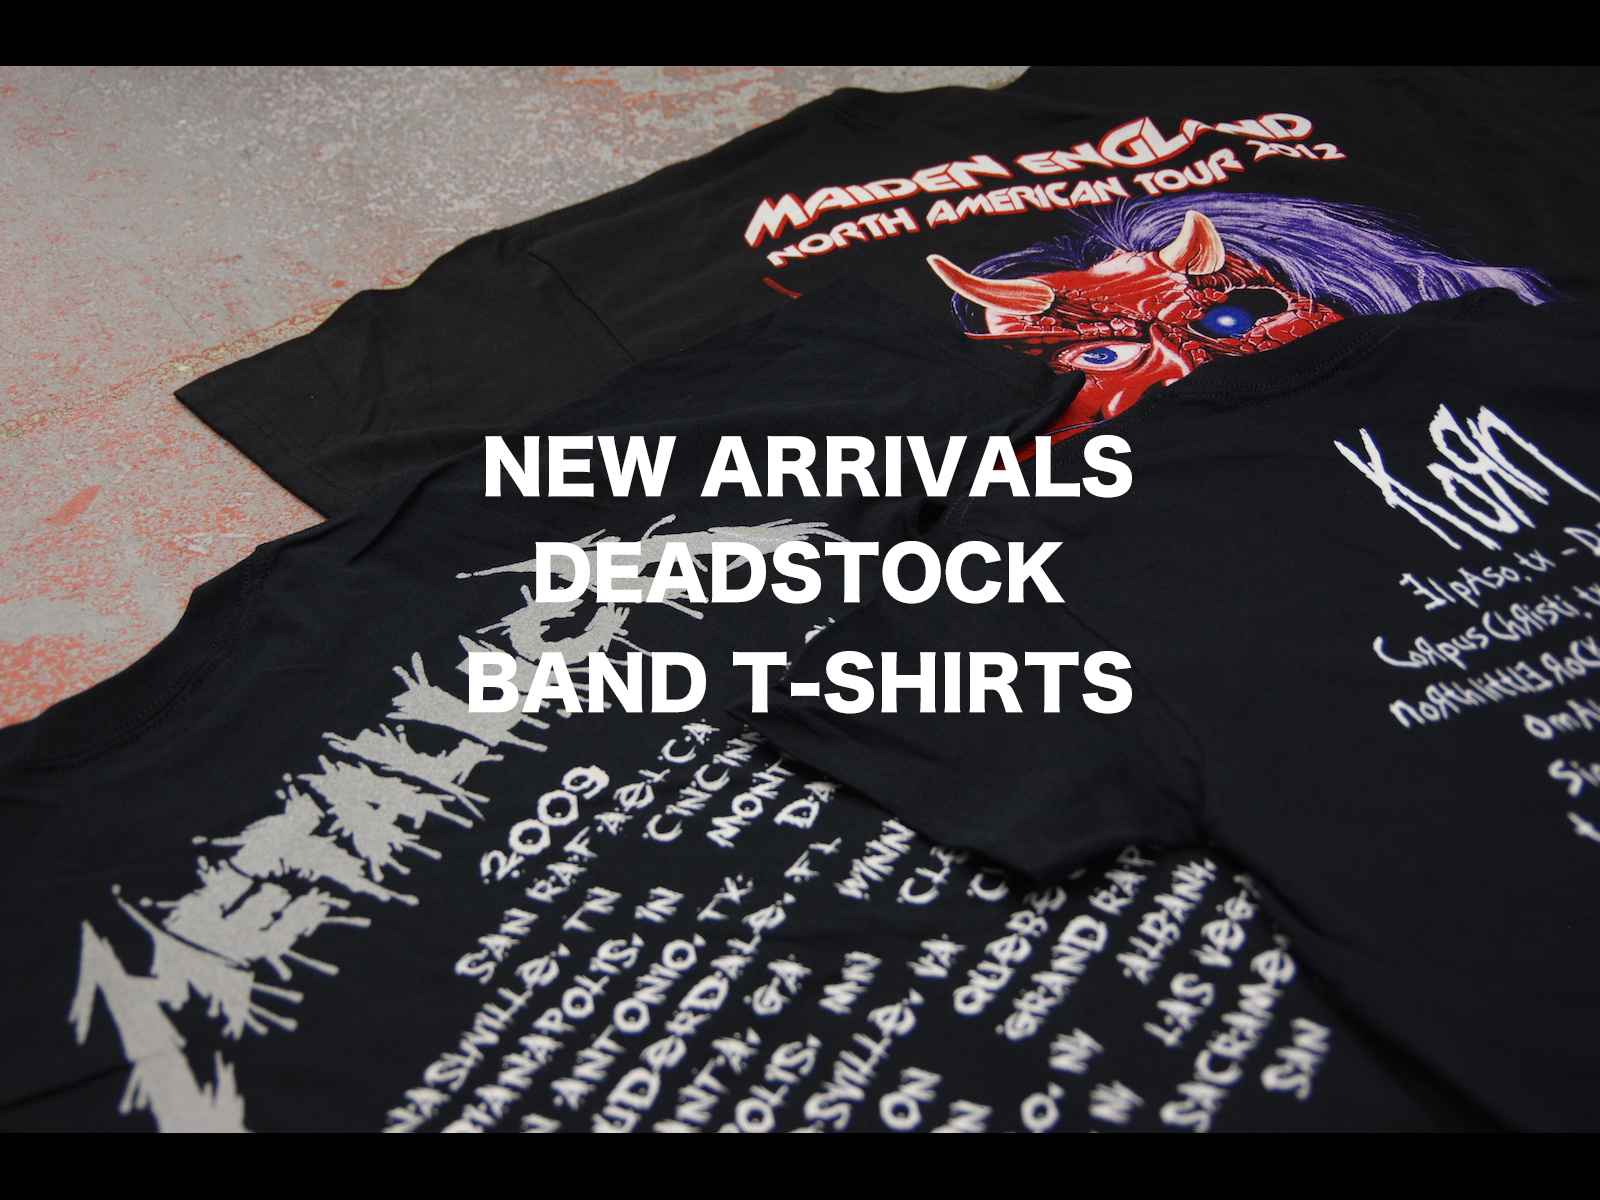 NEW ARRIVALS – DEADSTOCK BAND T-SHIRTS